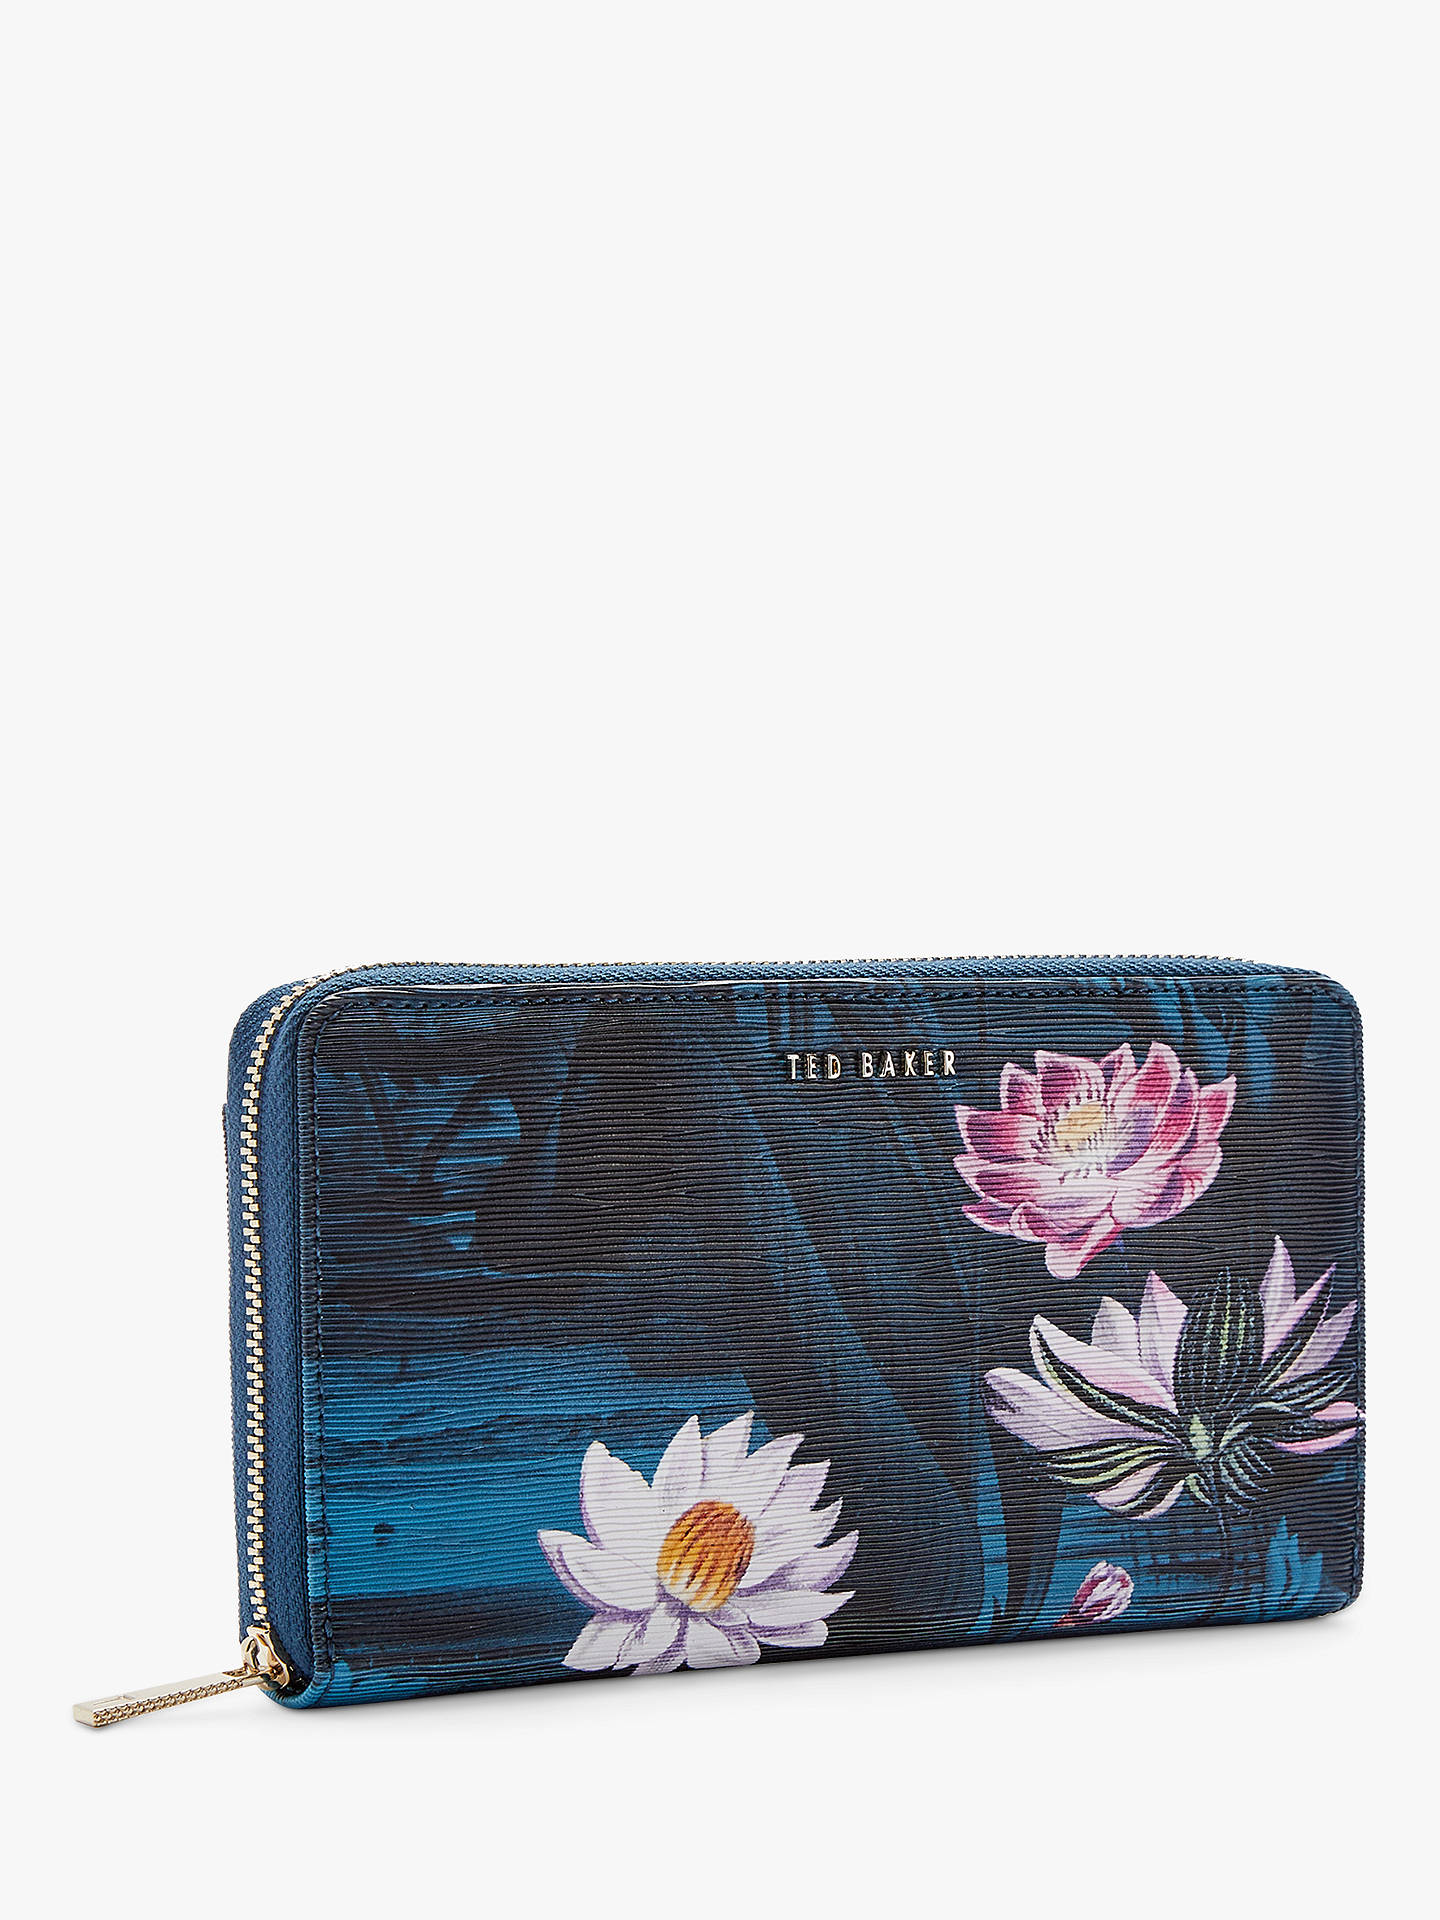 ce6566e50c Buy Ted Baker Dotti Floral Leather Matinee Zip Around Purse, Teal/Multi  Online at ...